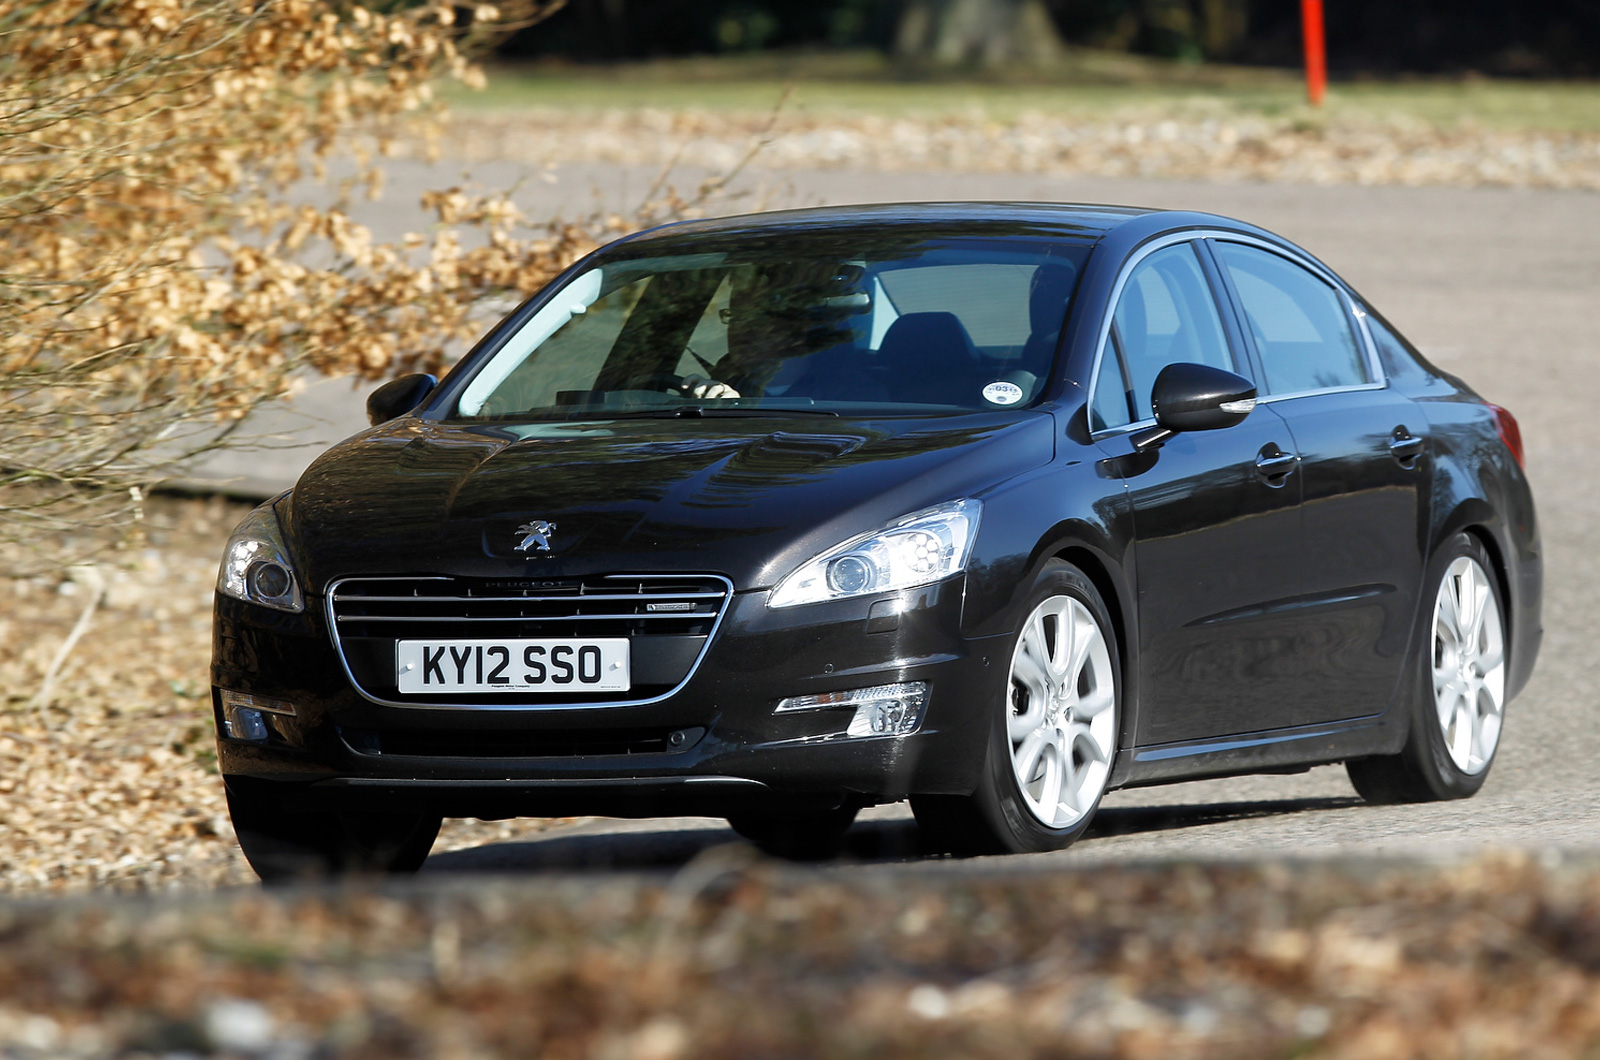 peugeot 508 hybrid4 first drive review autocar. Black Bedroom Furniture Sets. Home Design Ideas